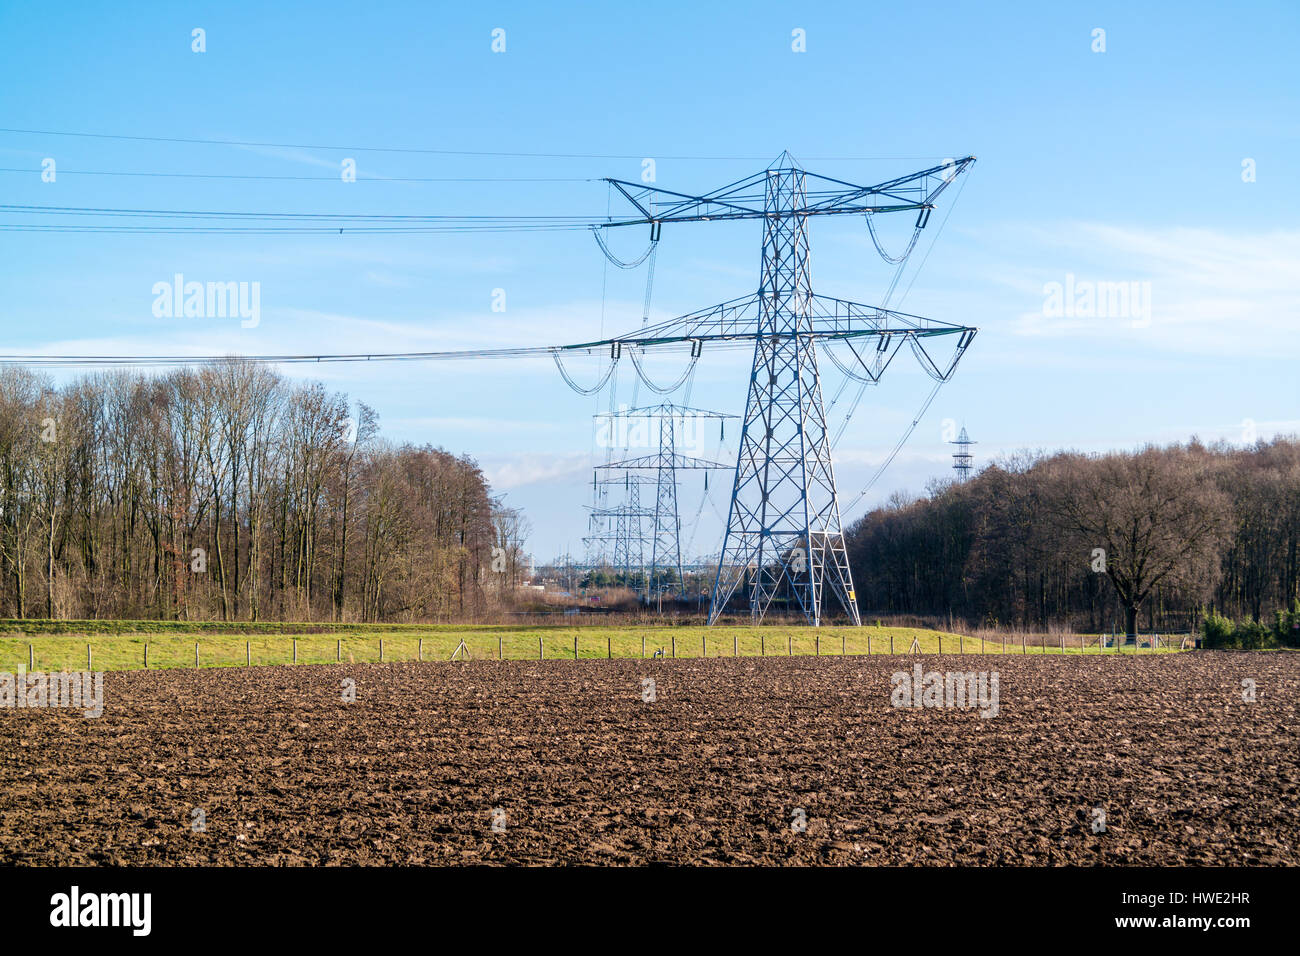 High tension wires of power station Clauscentrale near Maasbracht in the province of Limburg, Netherlands - Stock Image